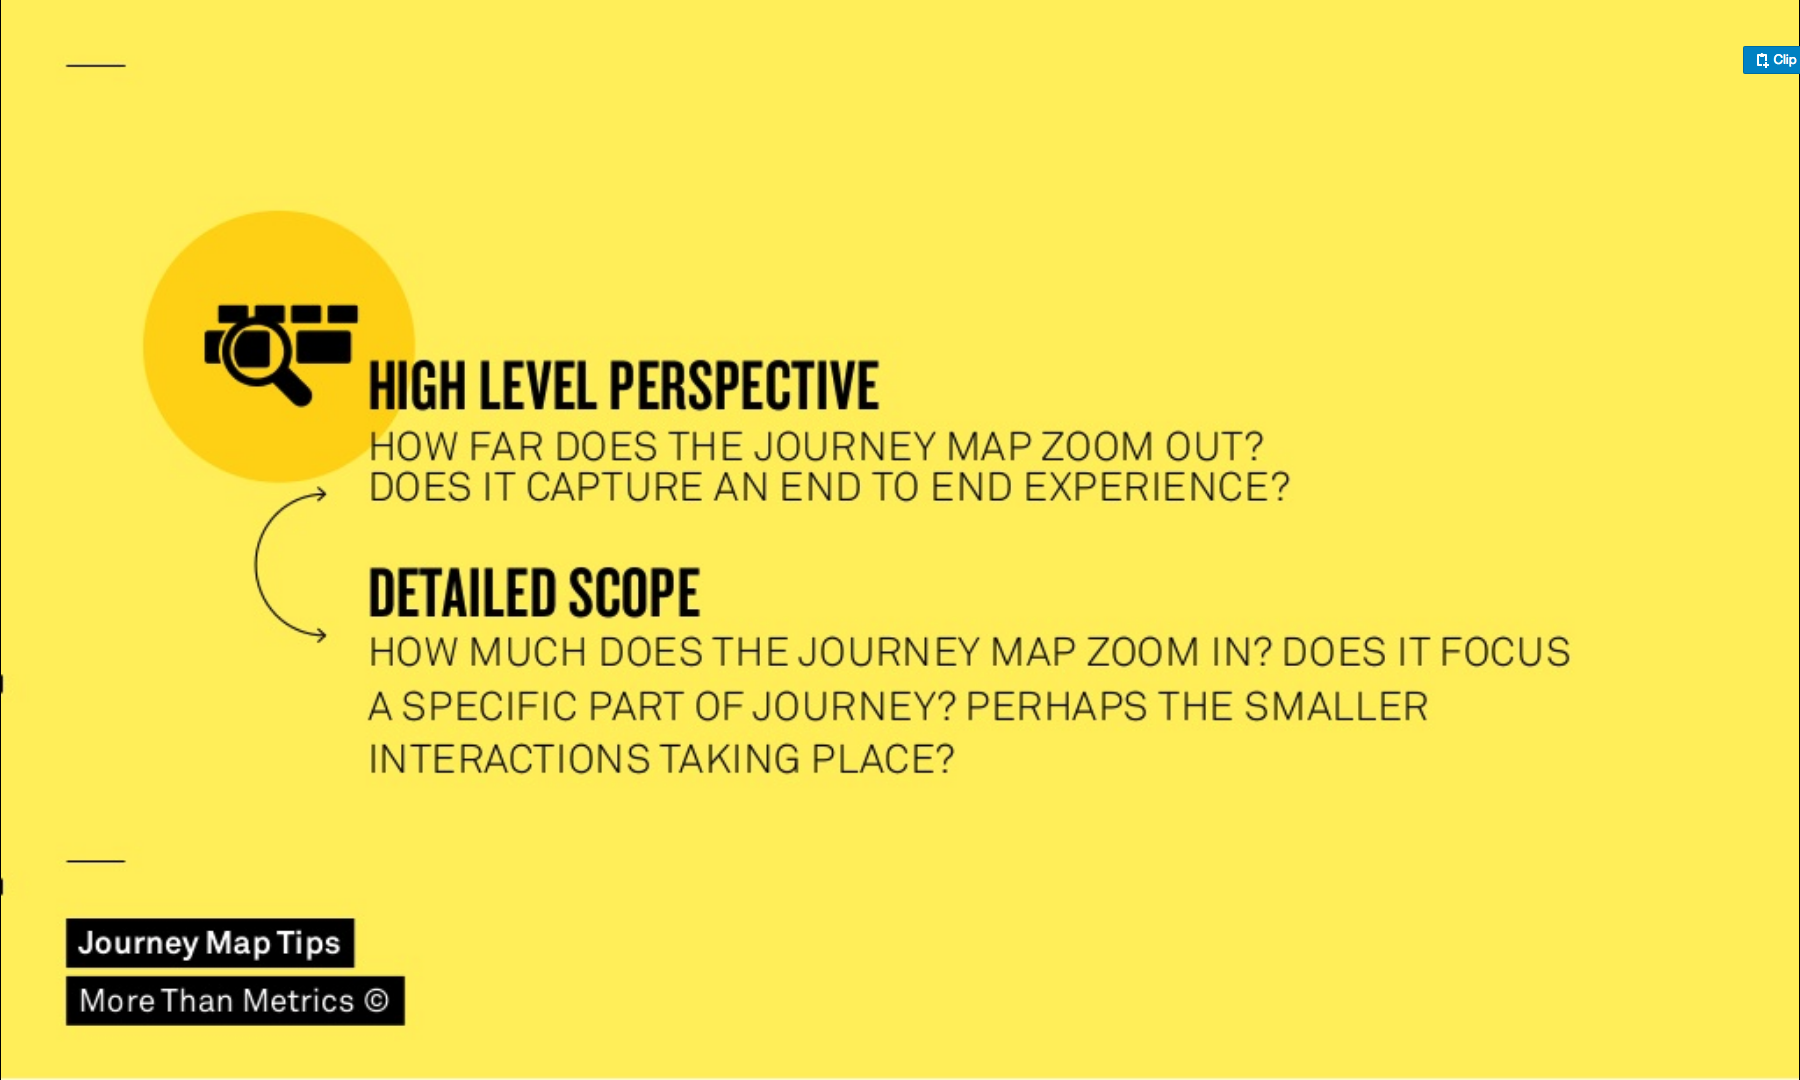 A journey map can have different zoom levels, it can either focus an end to end experience or on a specific part of the journey with smaller interactions.